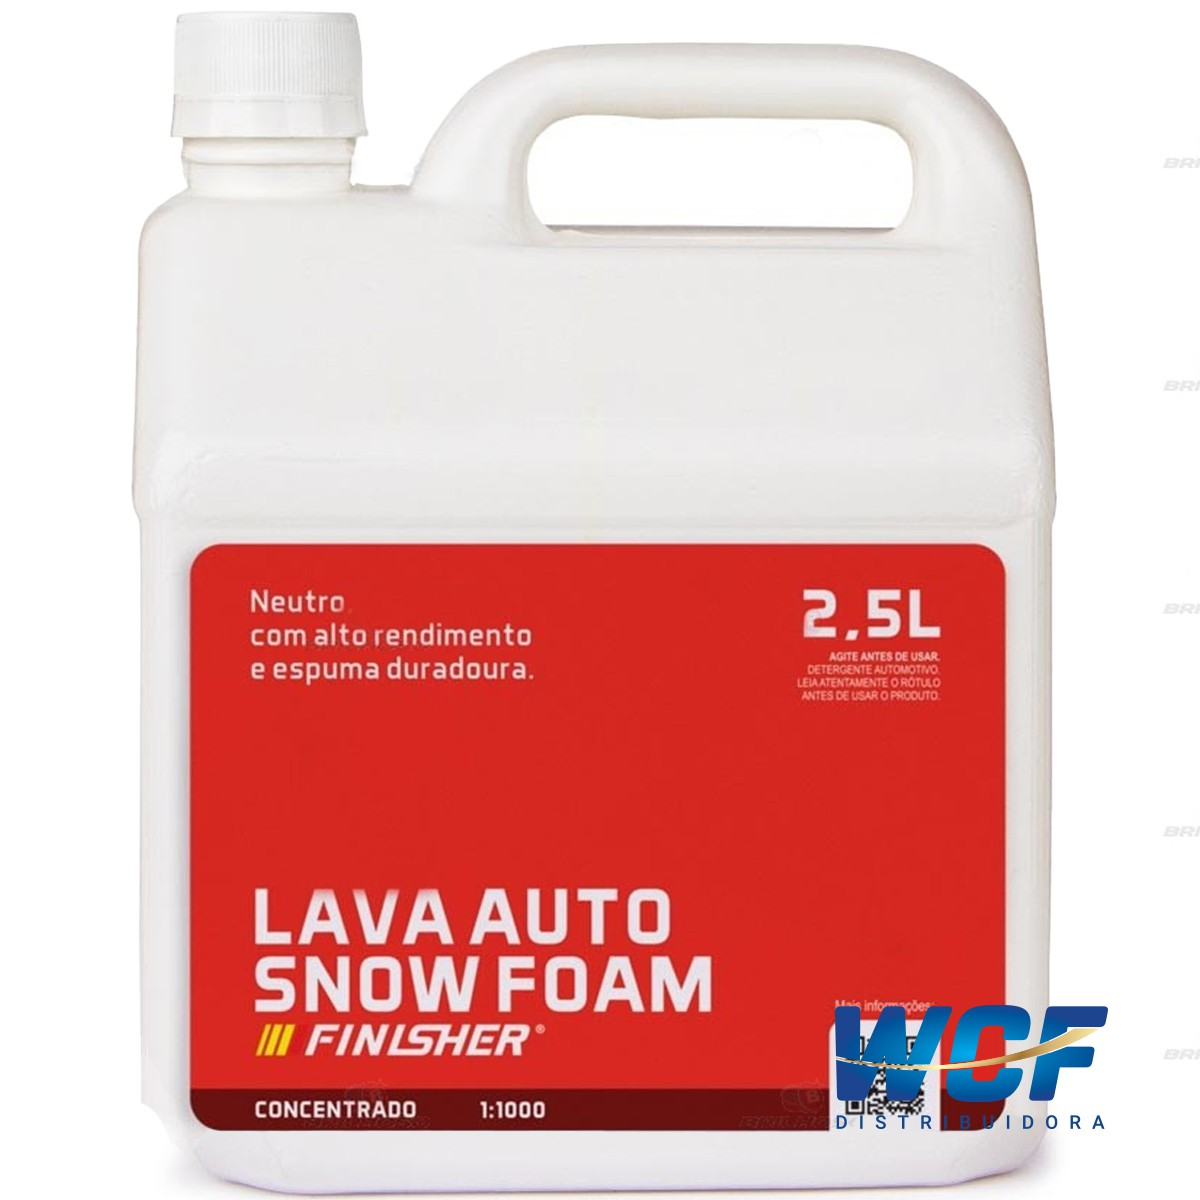 LAVA AUTO SNOW FOAN 2,5L FINISHER